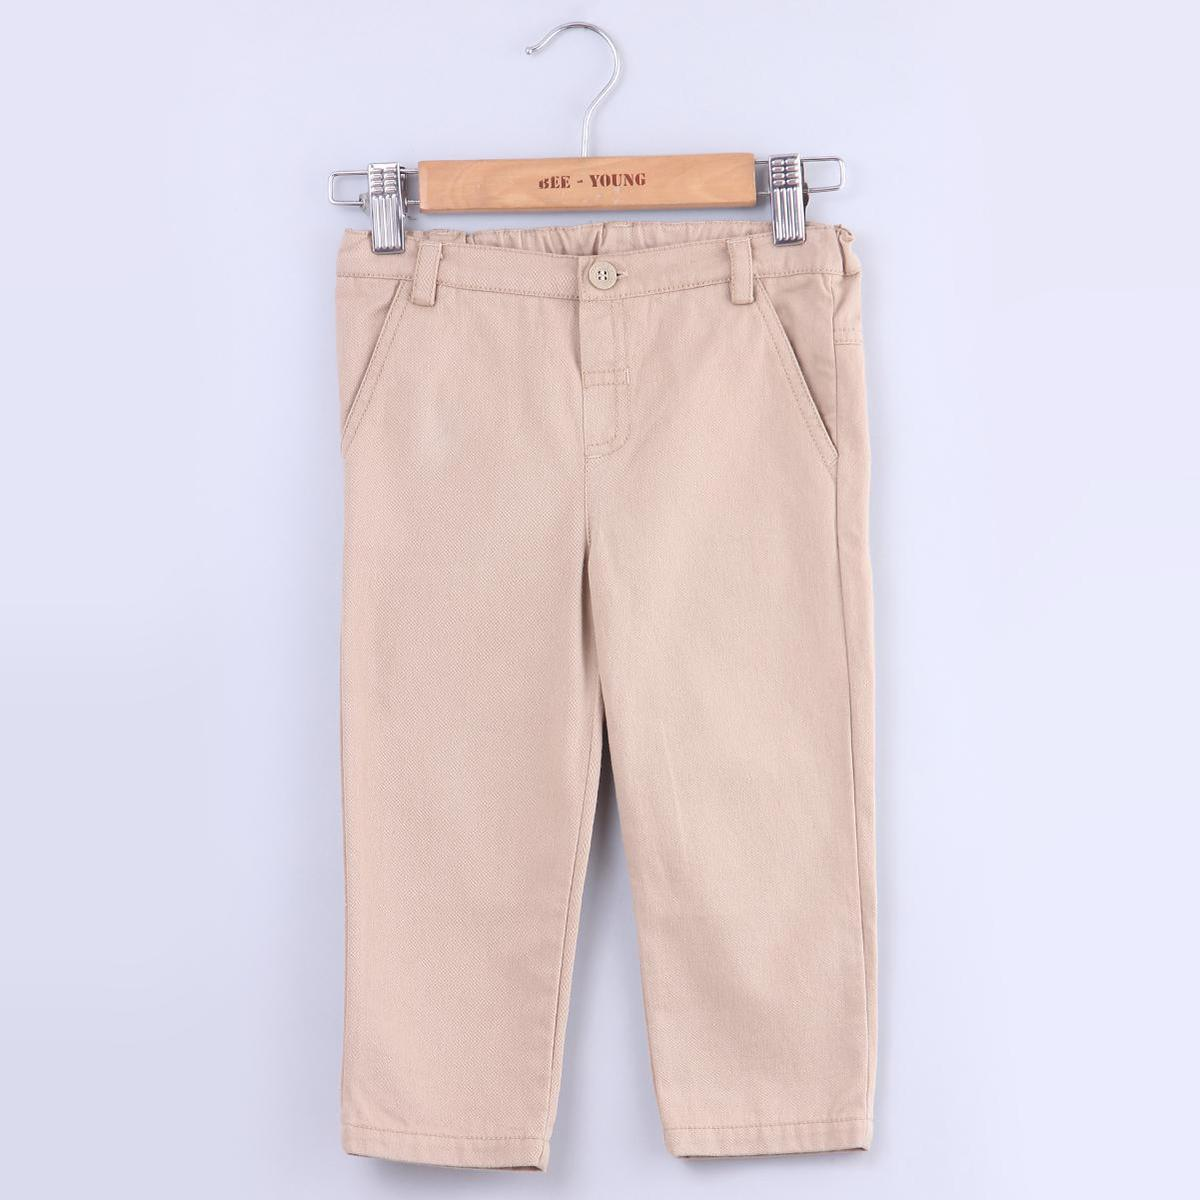 Beebay - Beige Colored Sand Beige Chino Cotton Stretchable Trousers For Infants Boys